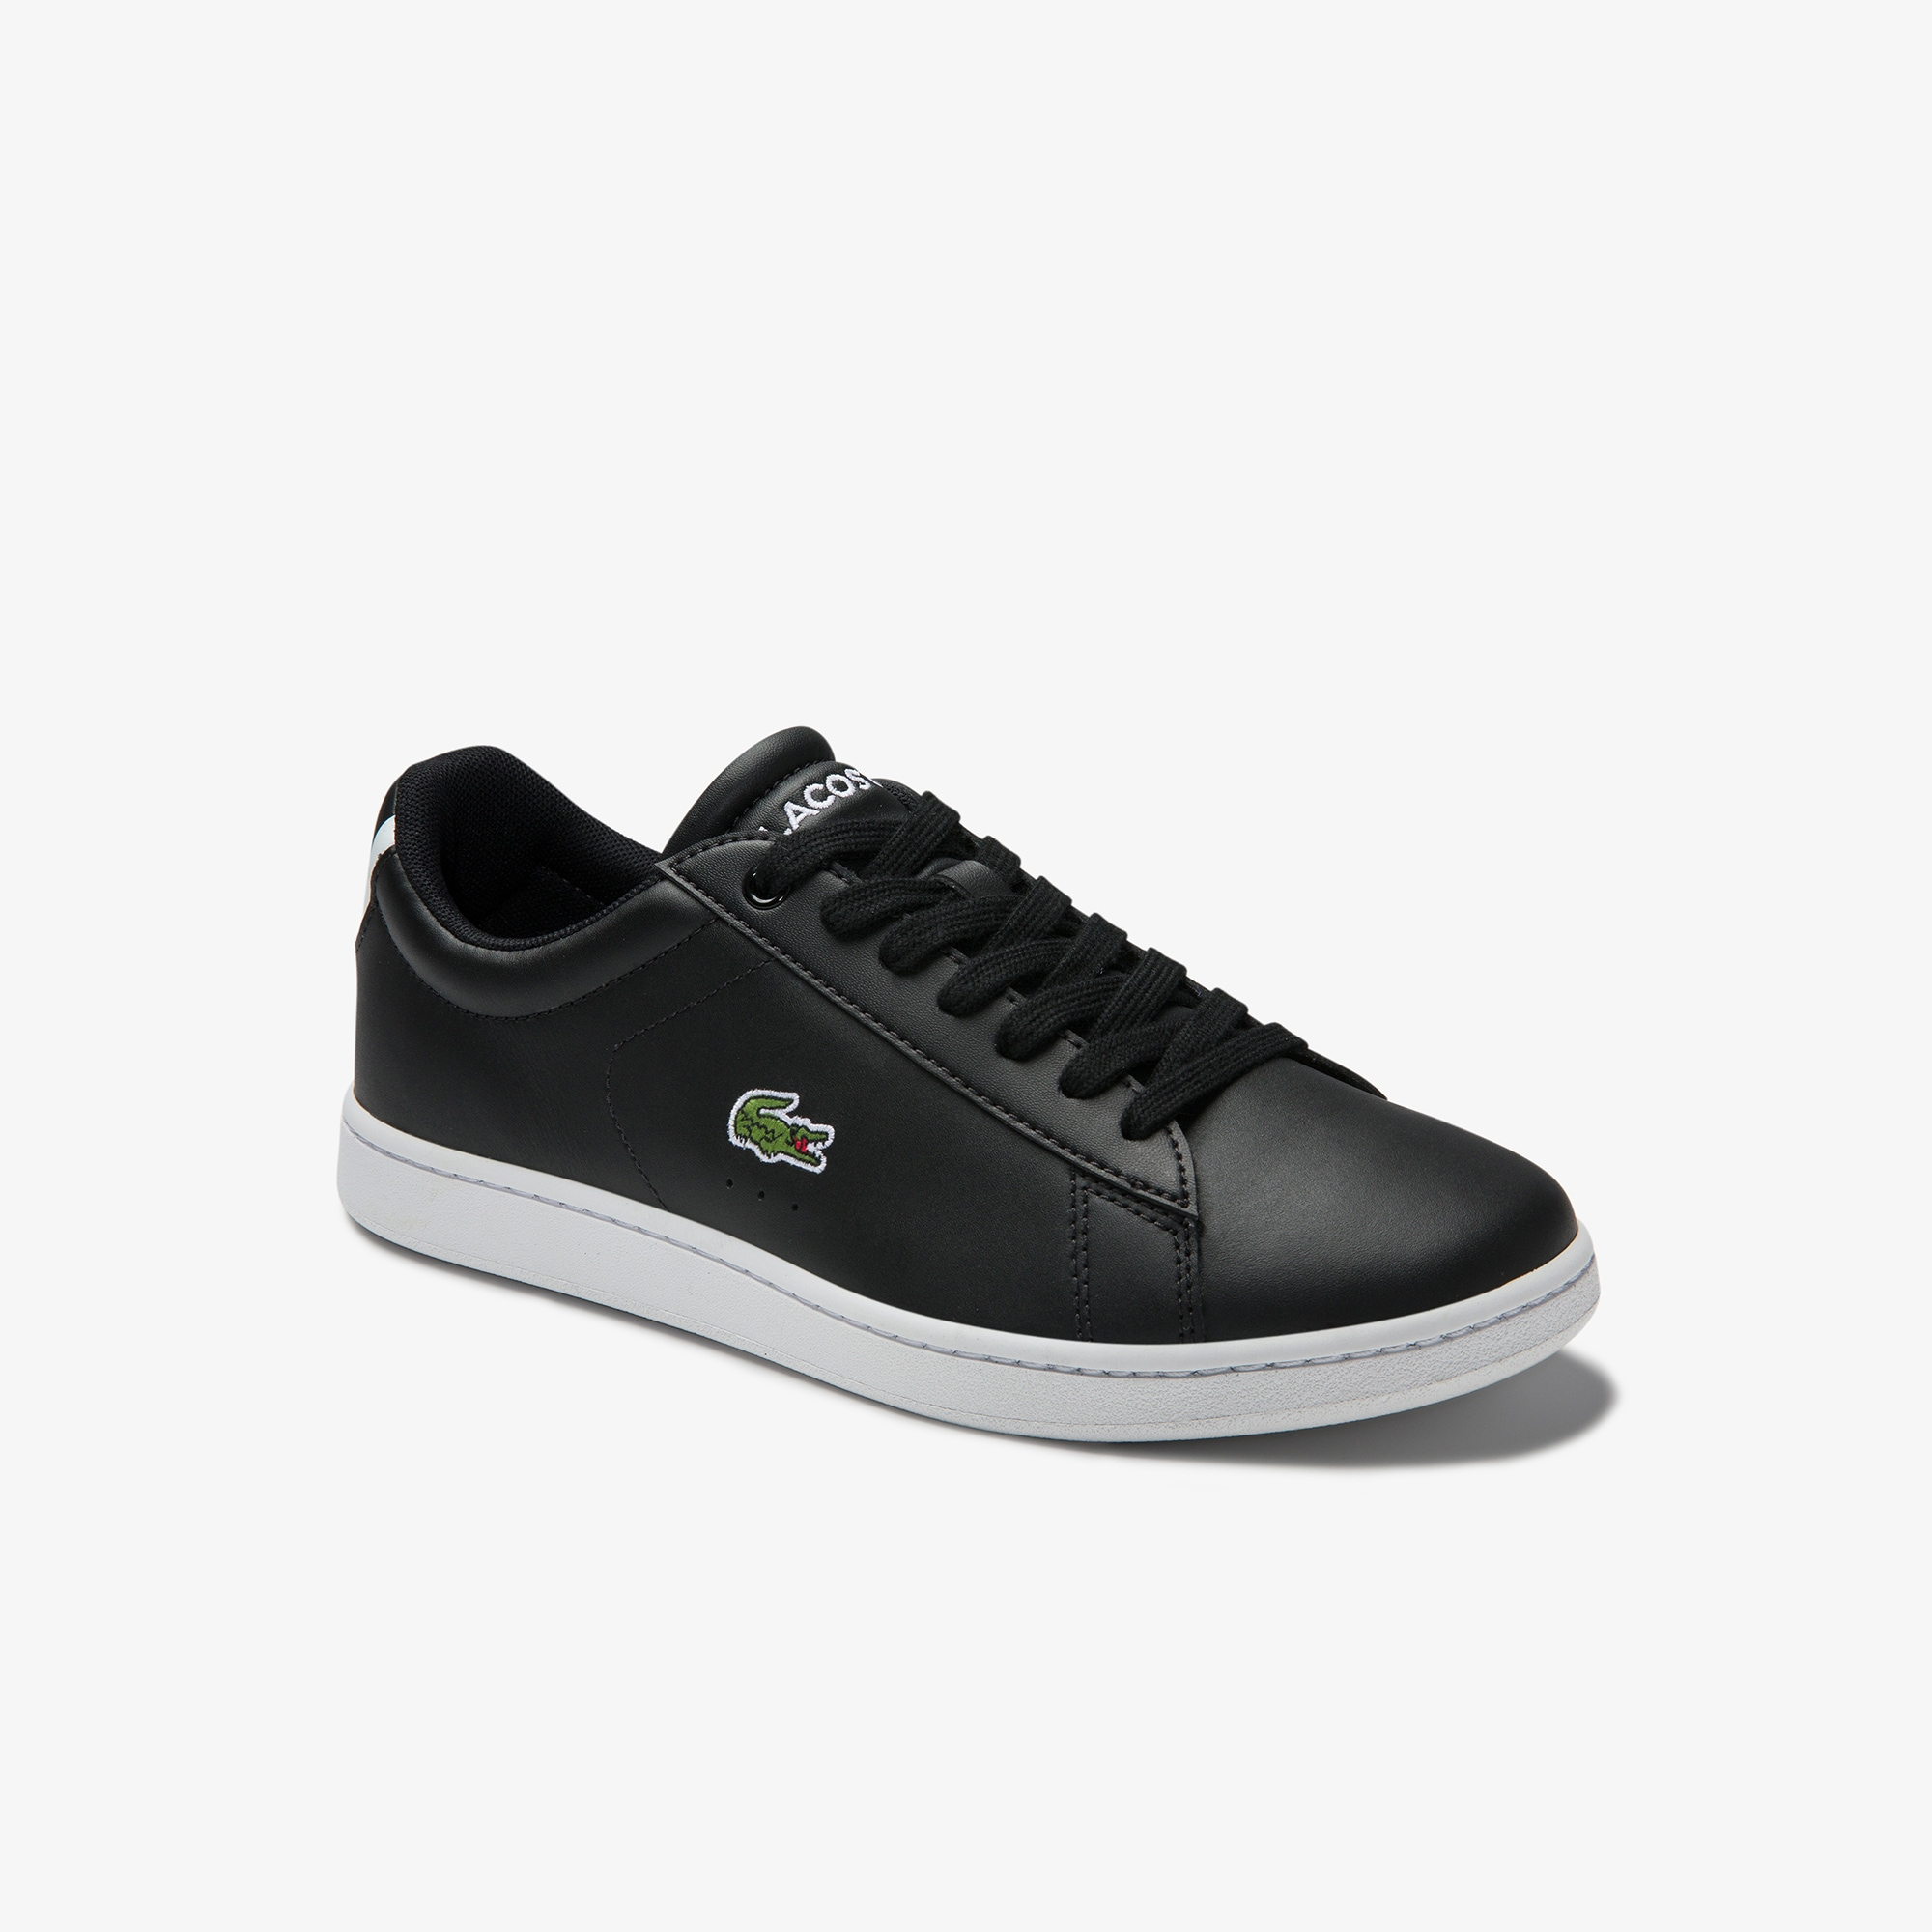 1a8c0160a5cb1 Women s Carnaby Evo BL Leather Trainers ...